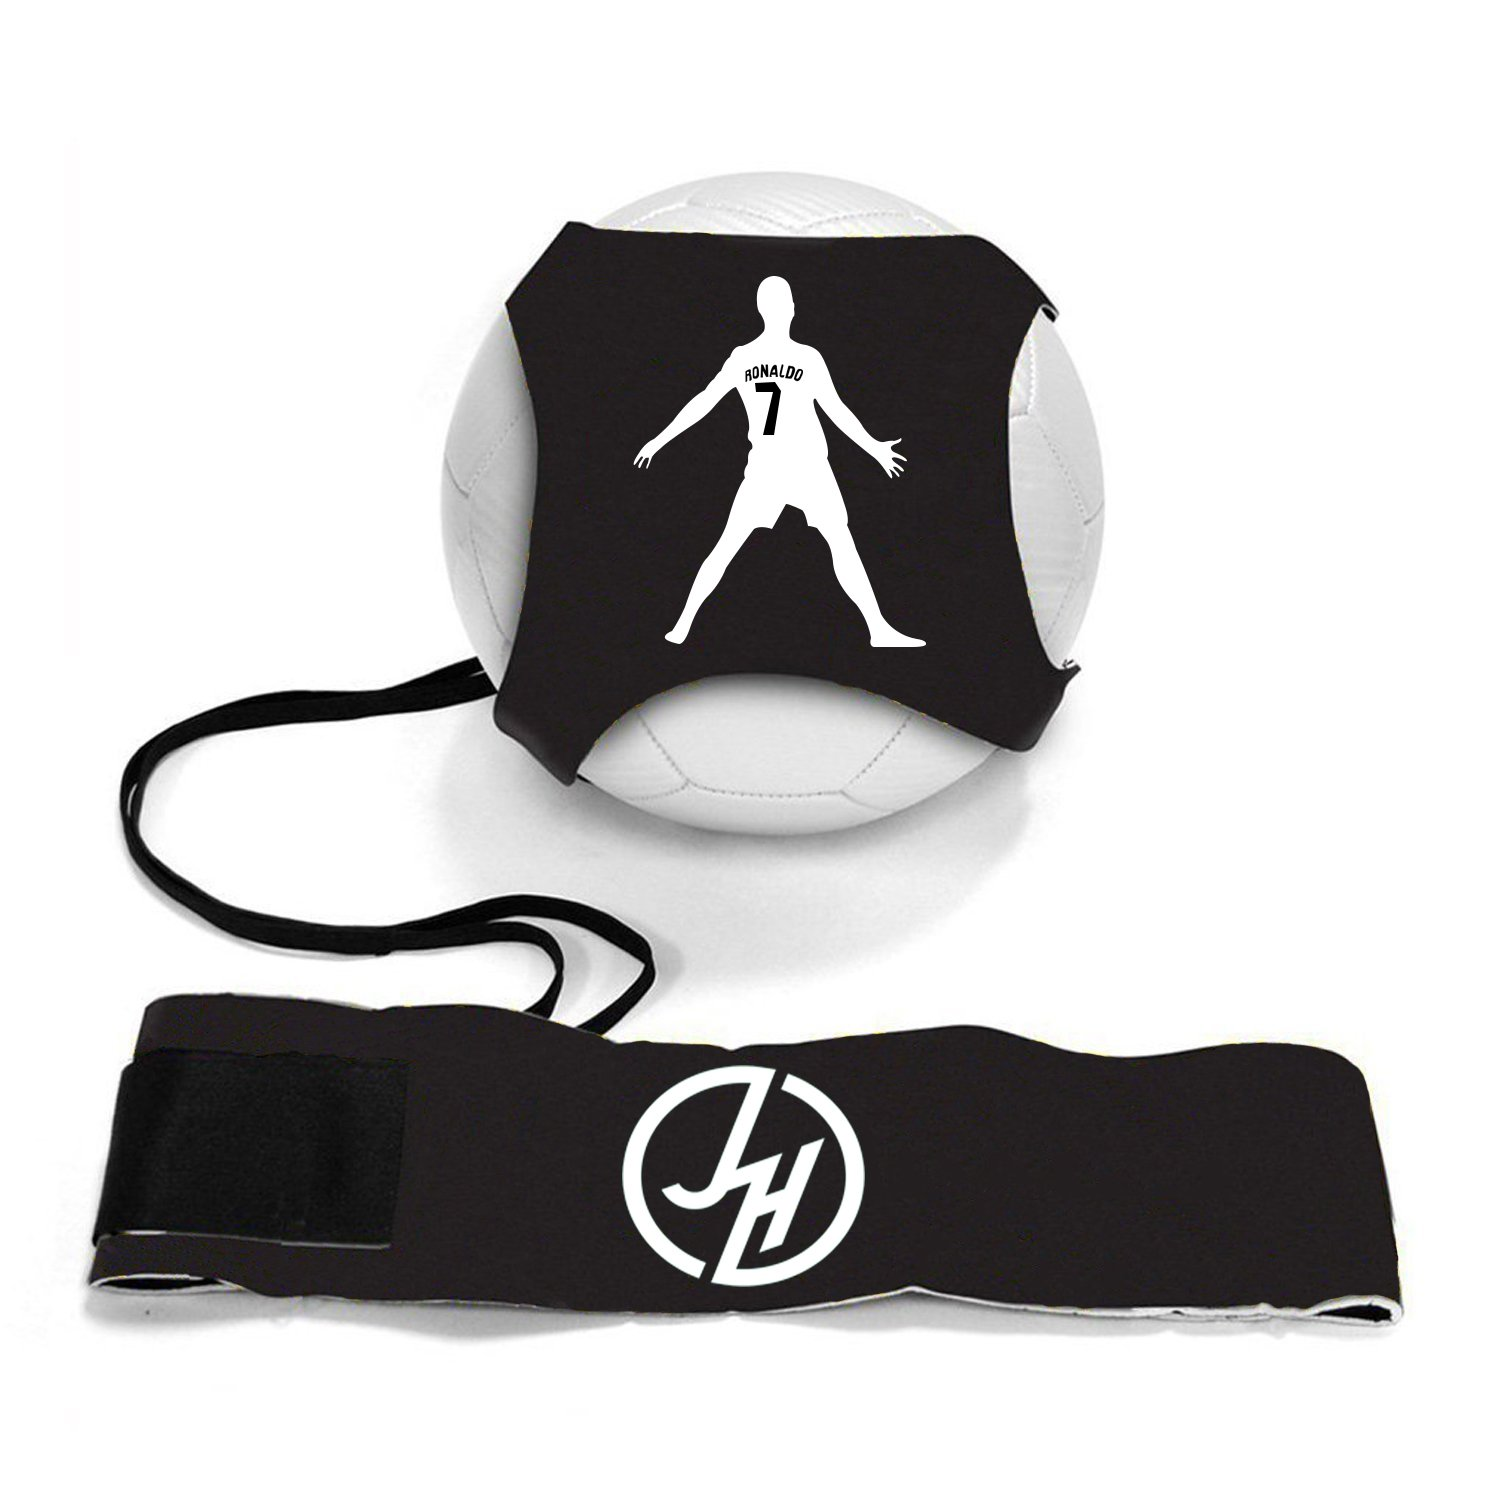 iSport Gifts Ronaldo #7 StarKick Solo Soccer Trainer Aid ✓ Adjustable Soccer Training Belt Rebounder ✓ Fits Soccer Ball Size 3, 4 & 5BALL NOT Included